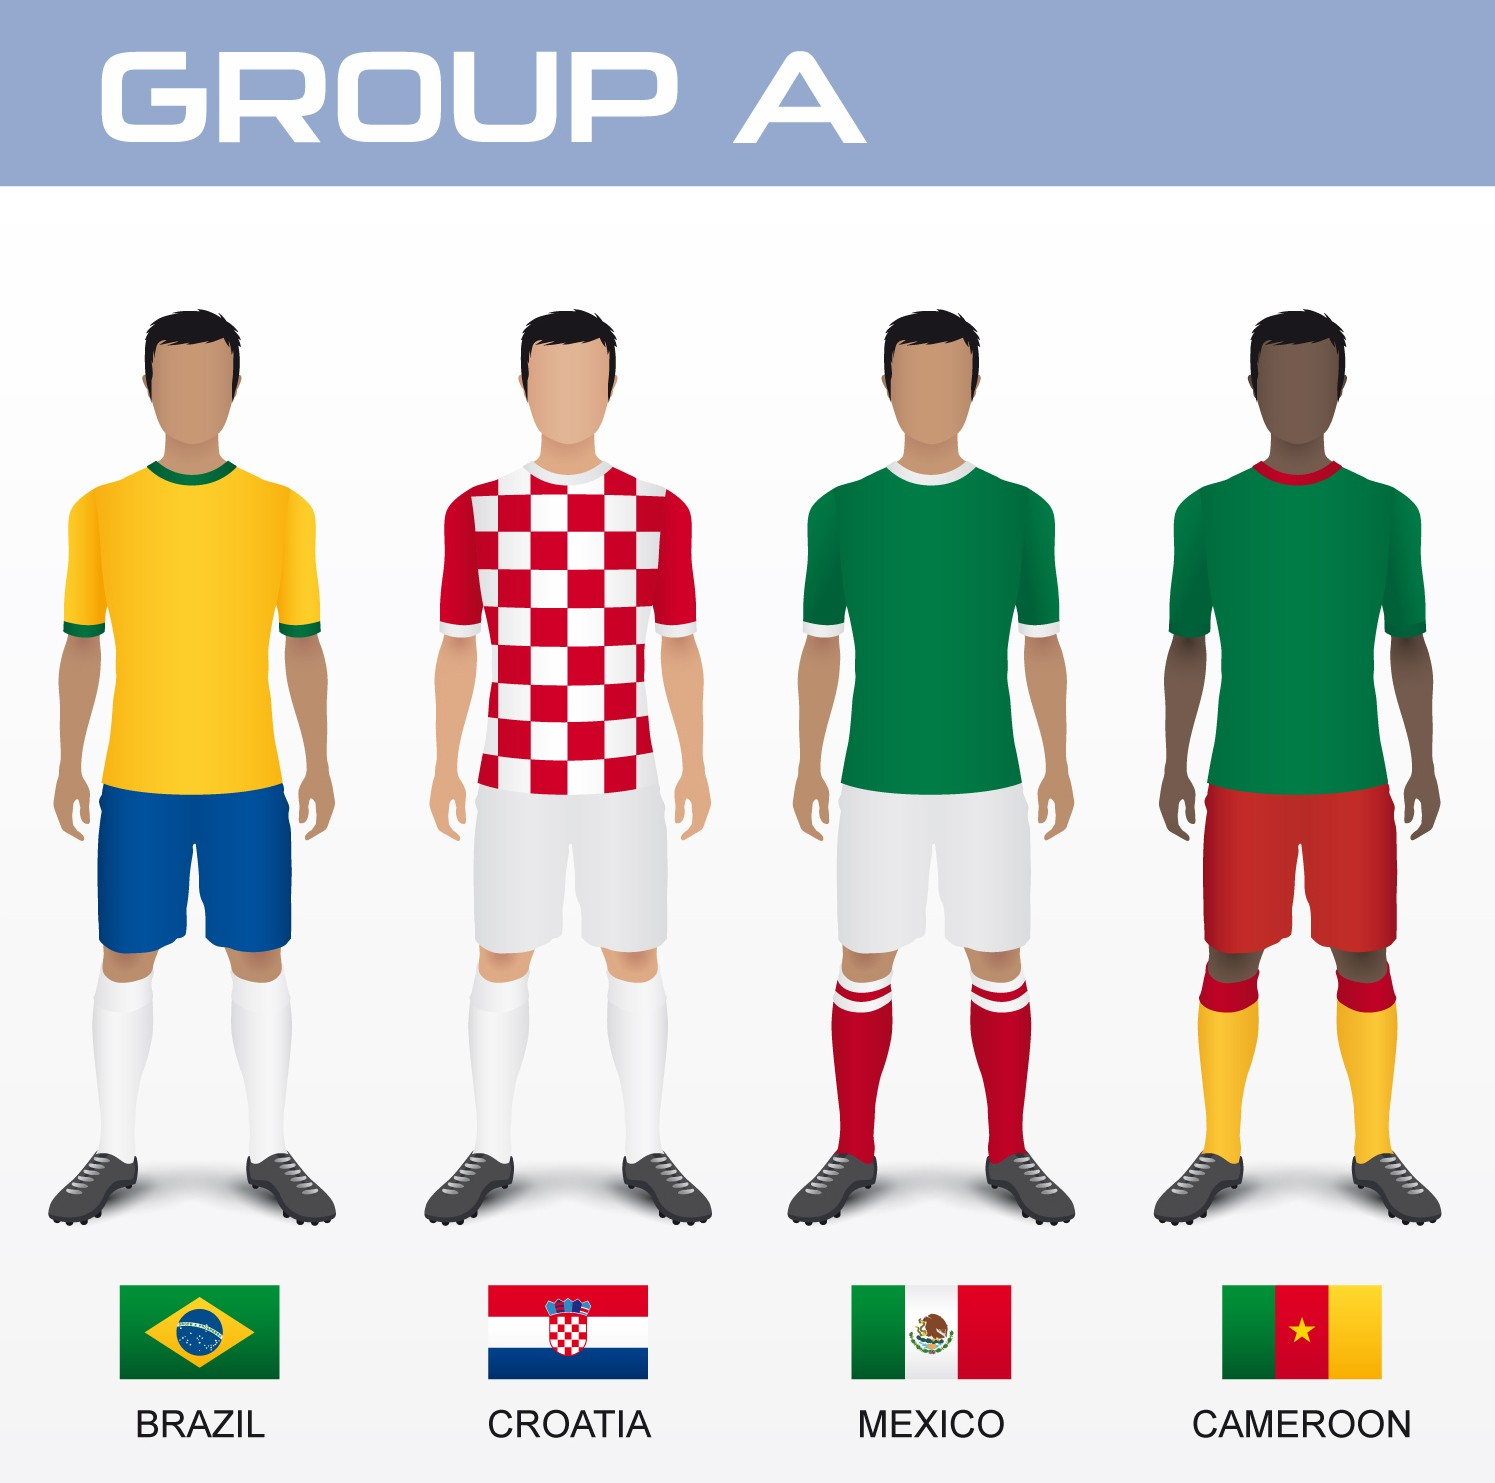 huge selection of f4a43 a0332 FIFA 2014 World Cup Teams and Fixtures   African Reporter